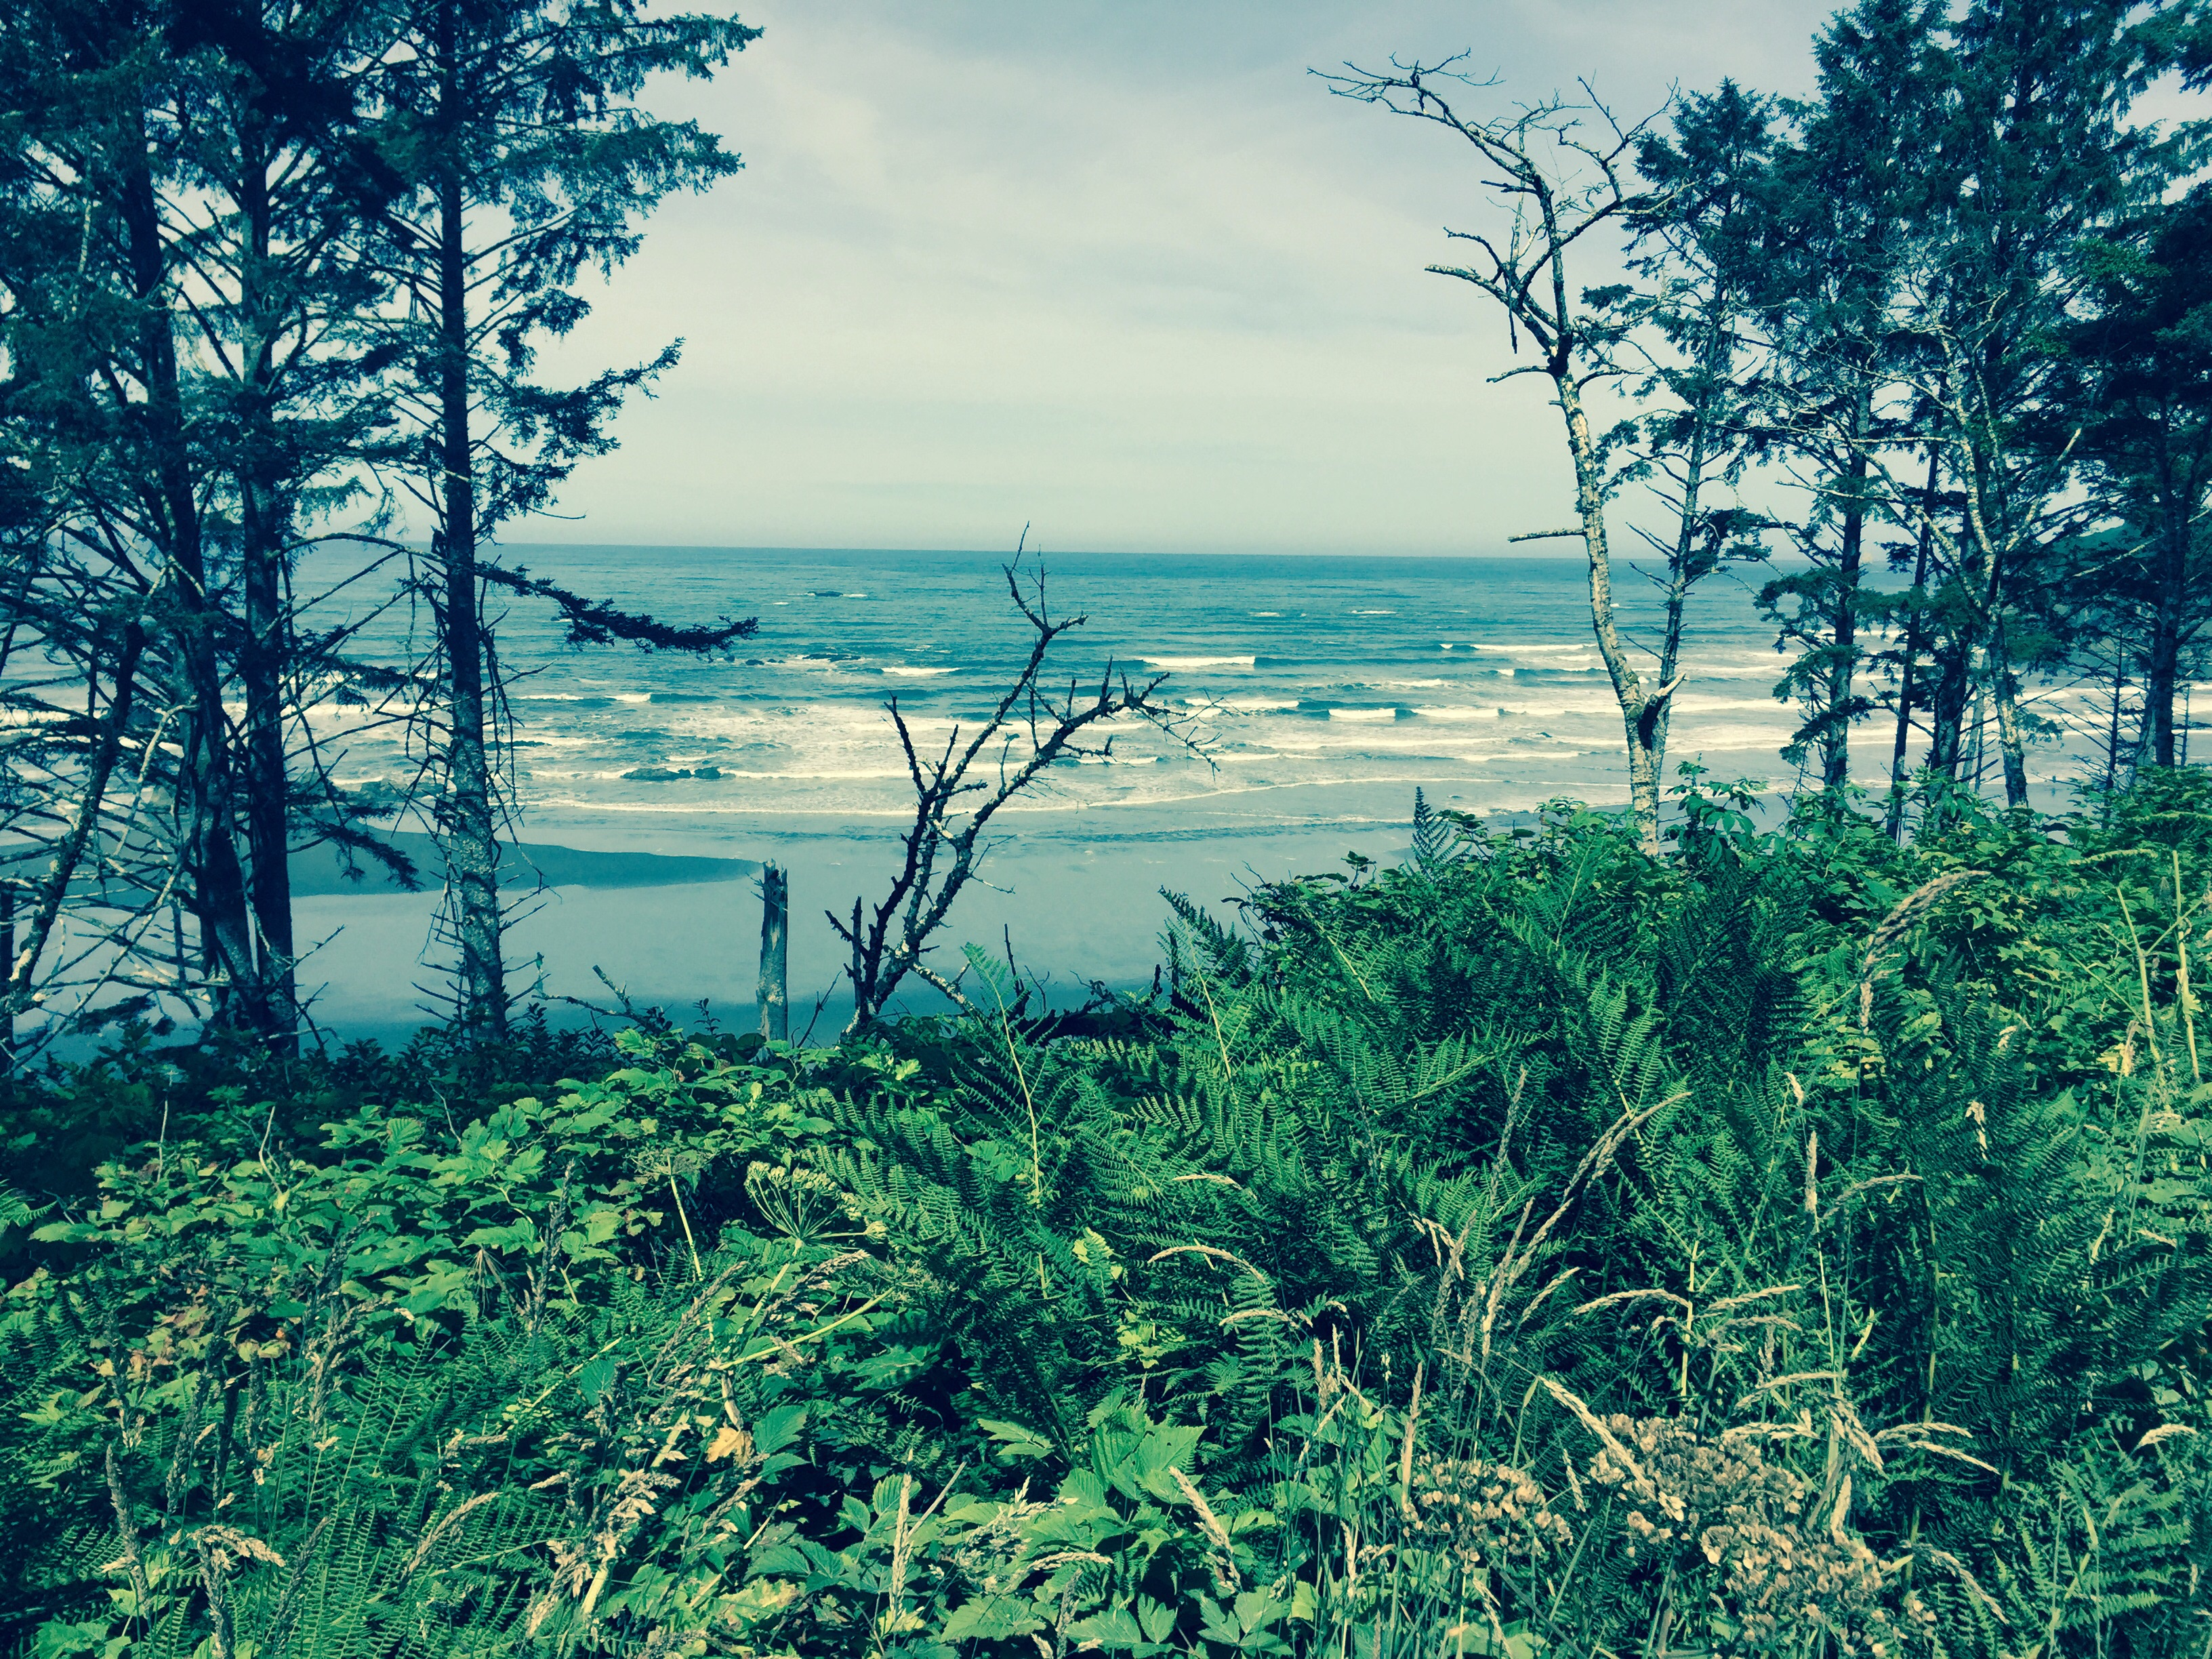 The Washington coast.